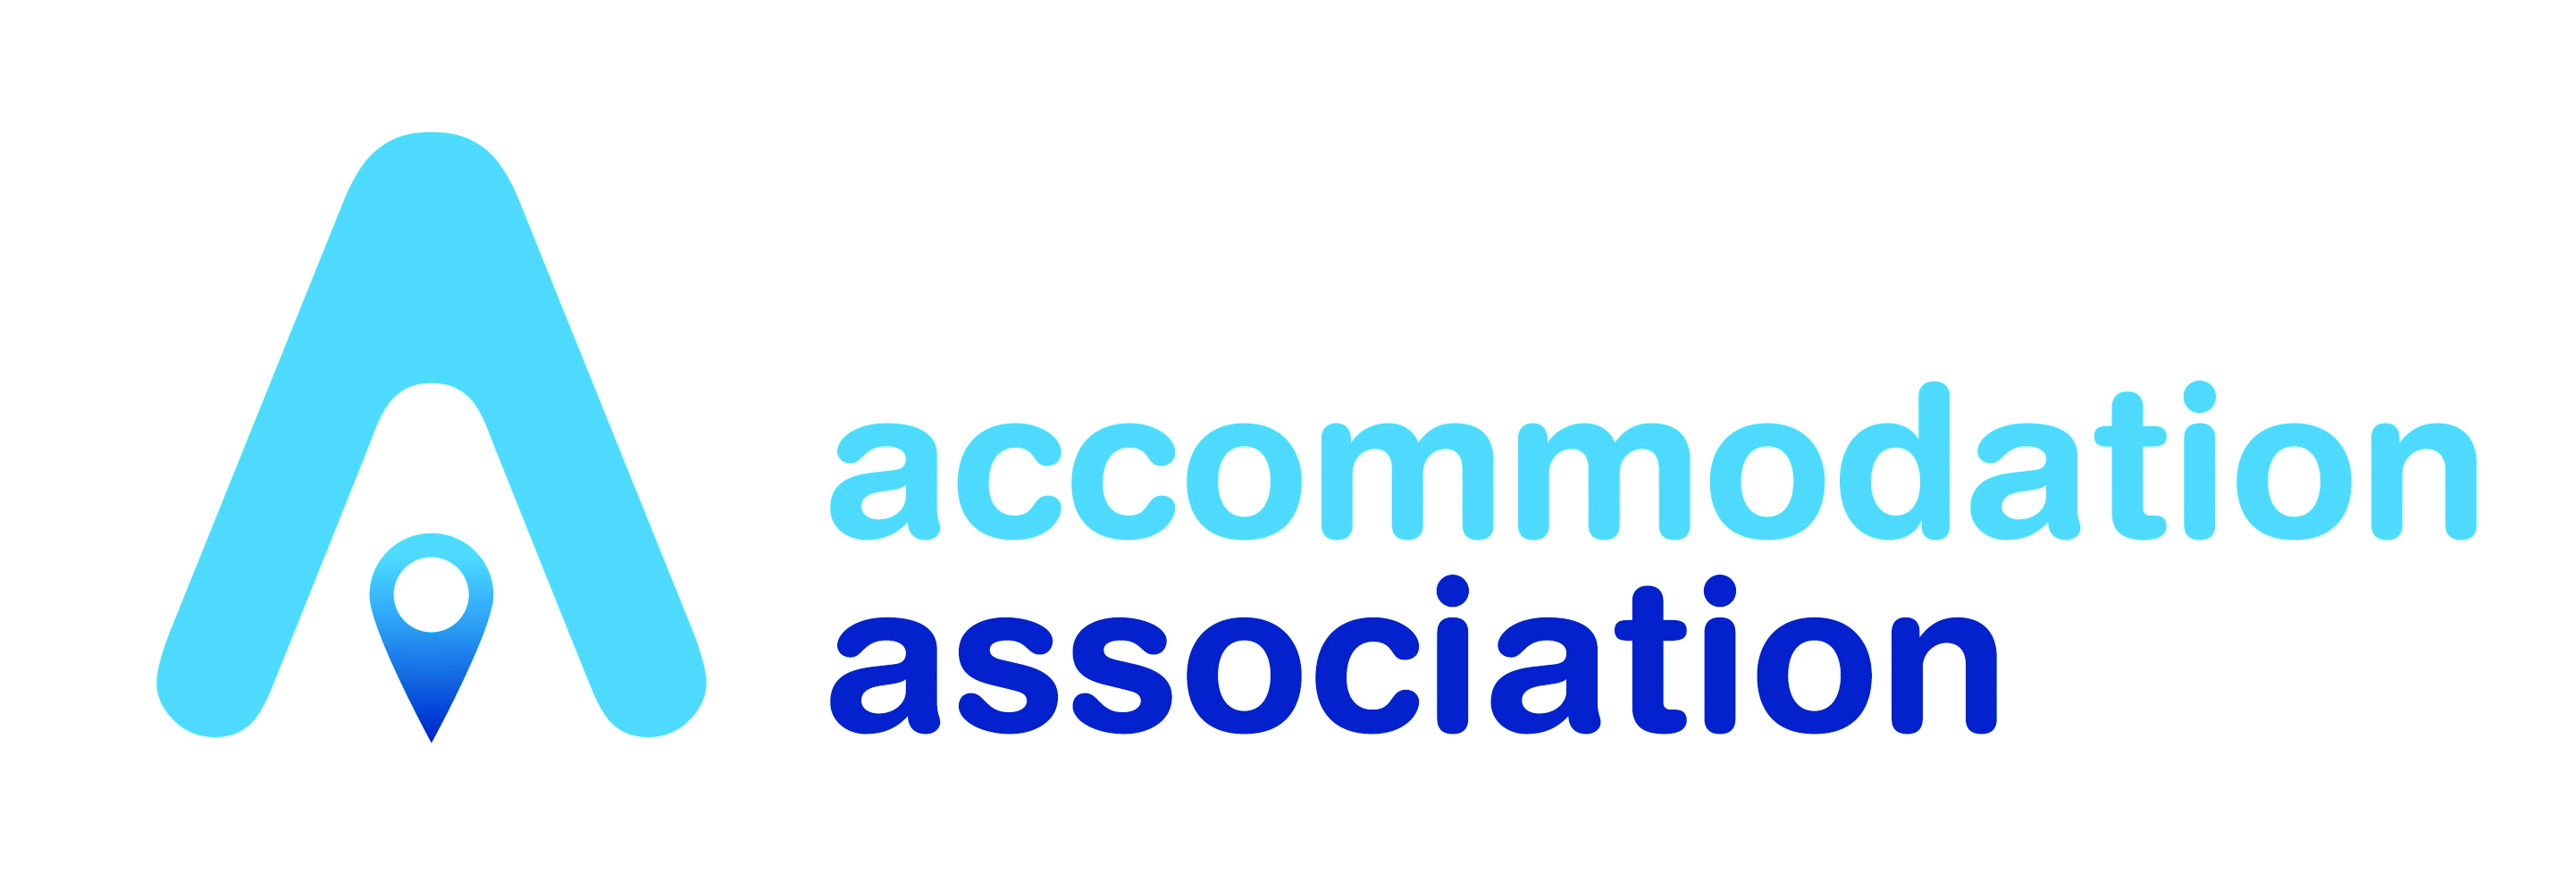 The Accommodation Association of Australia